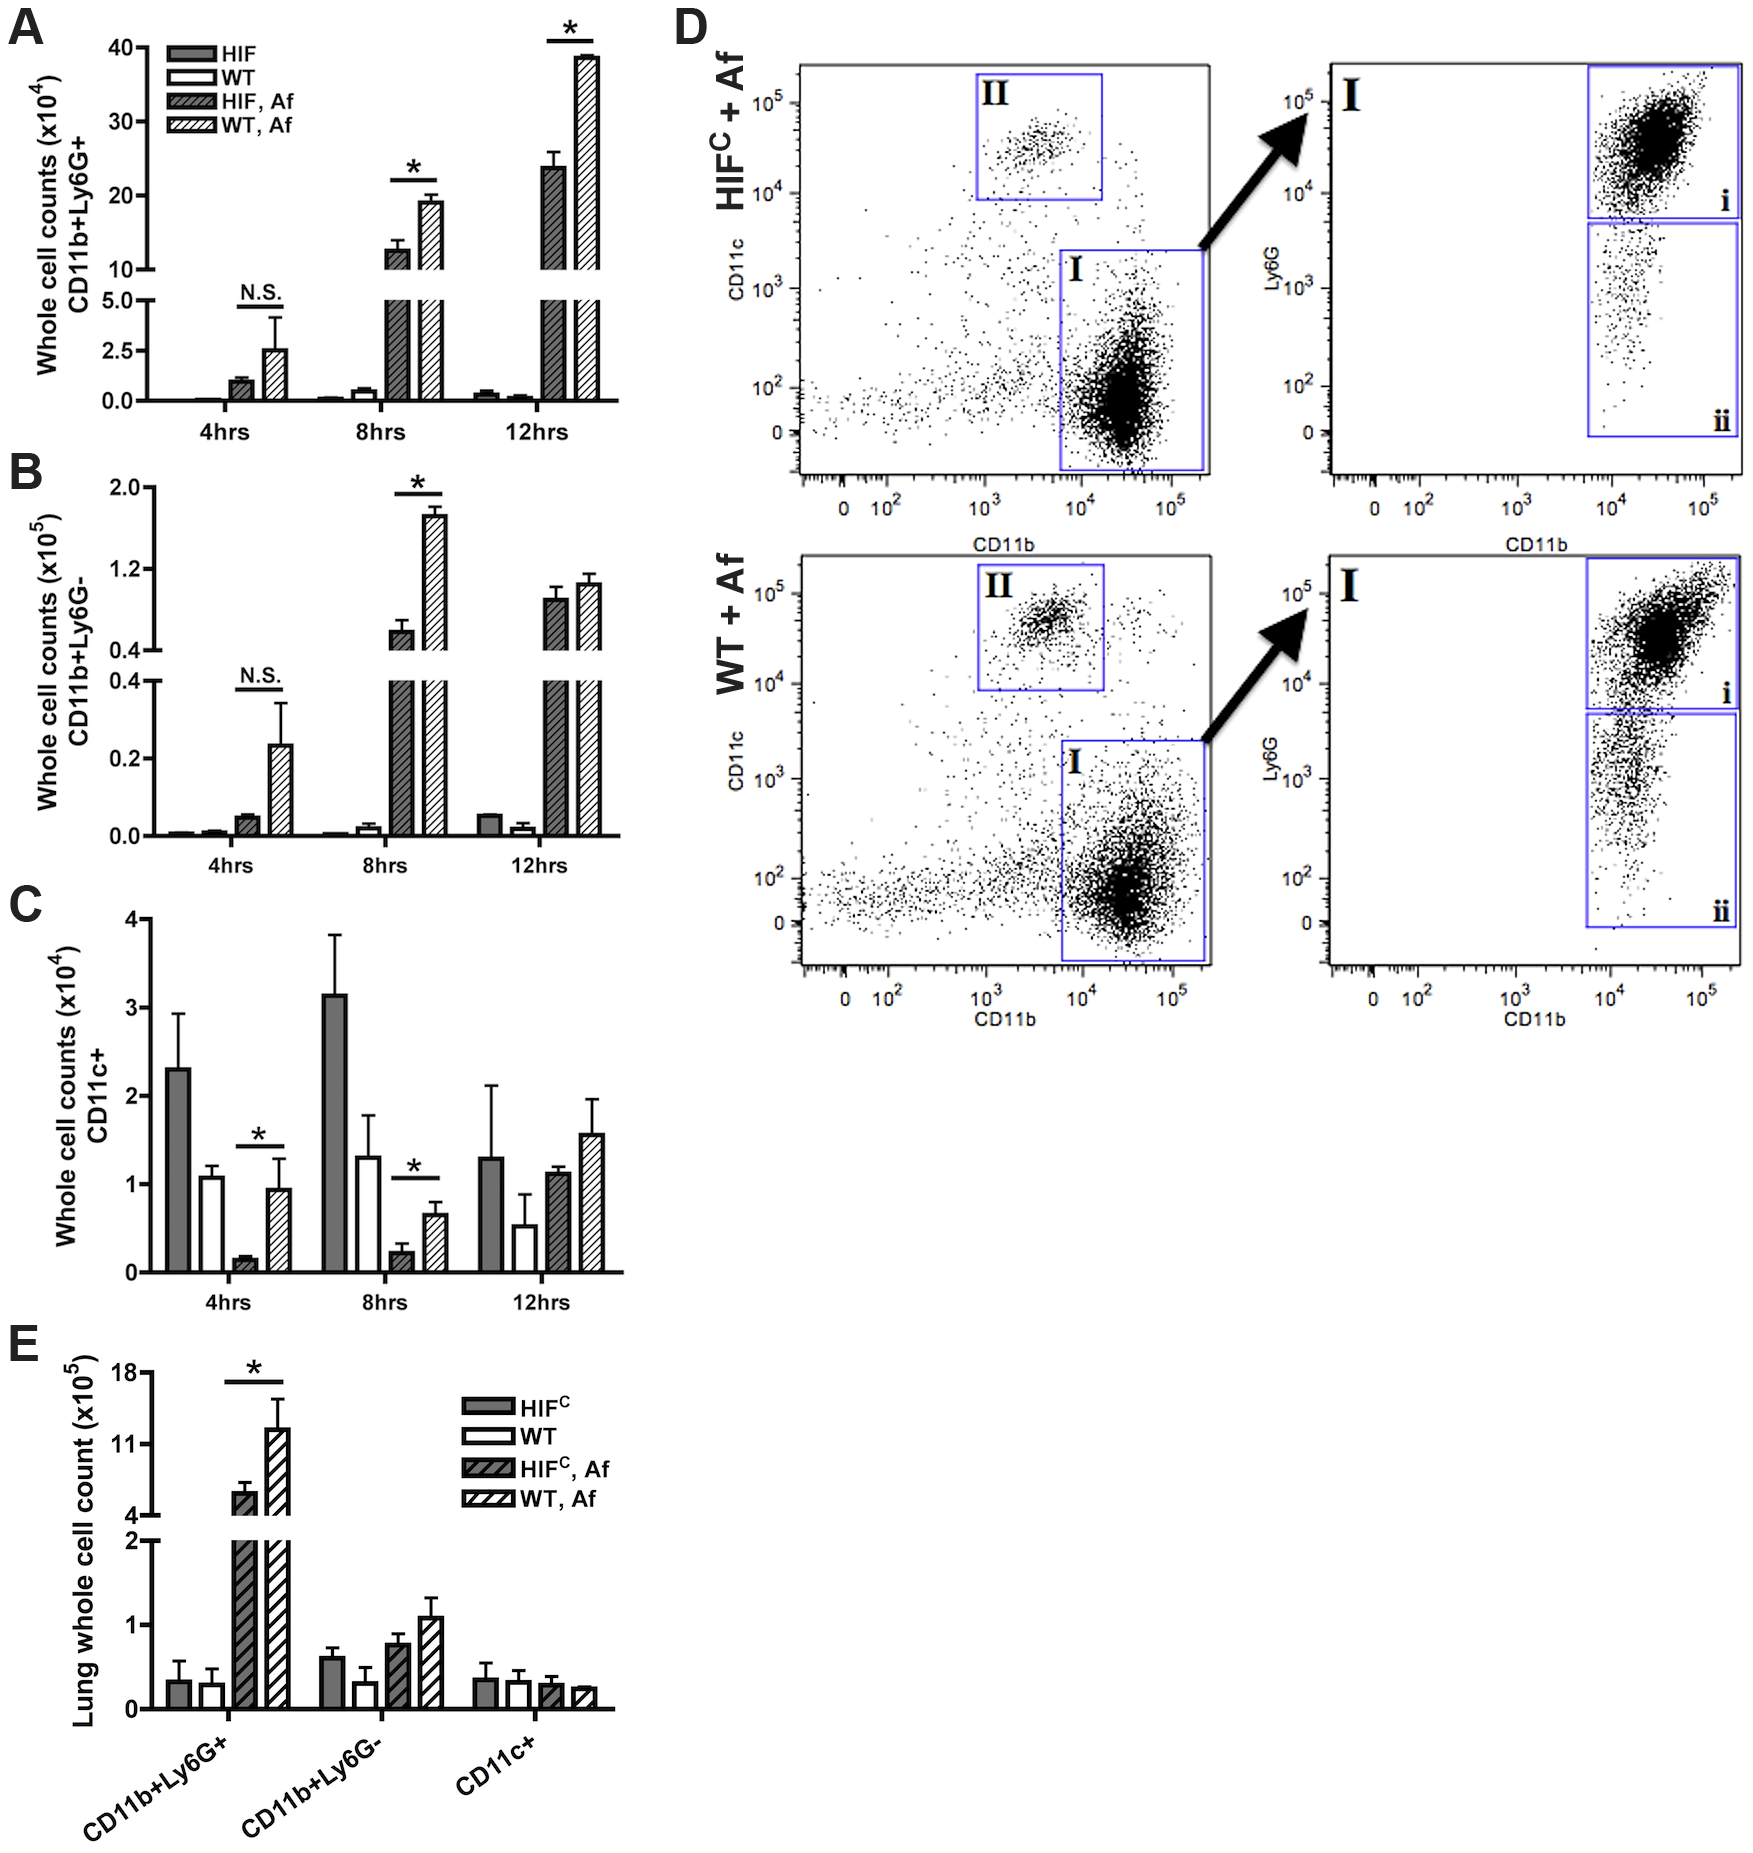 Mice deficient in myeloid HIF1α have significantly less neutrophils in BALF and lung tissue early during lung infection.